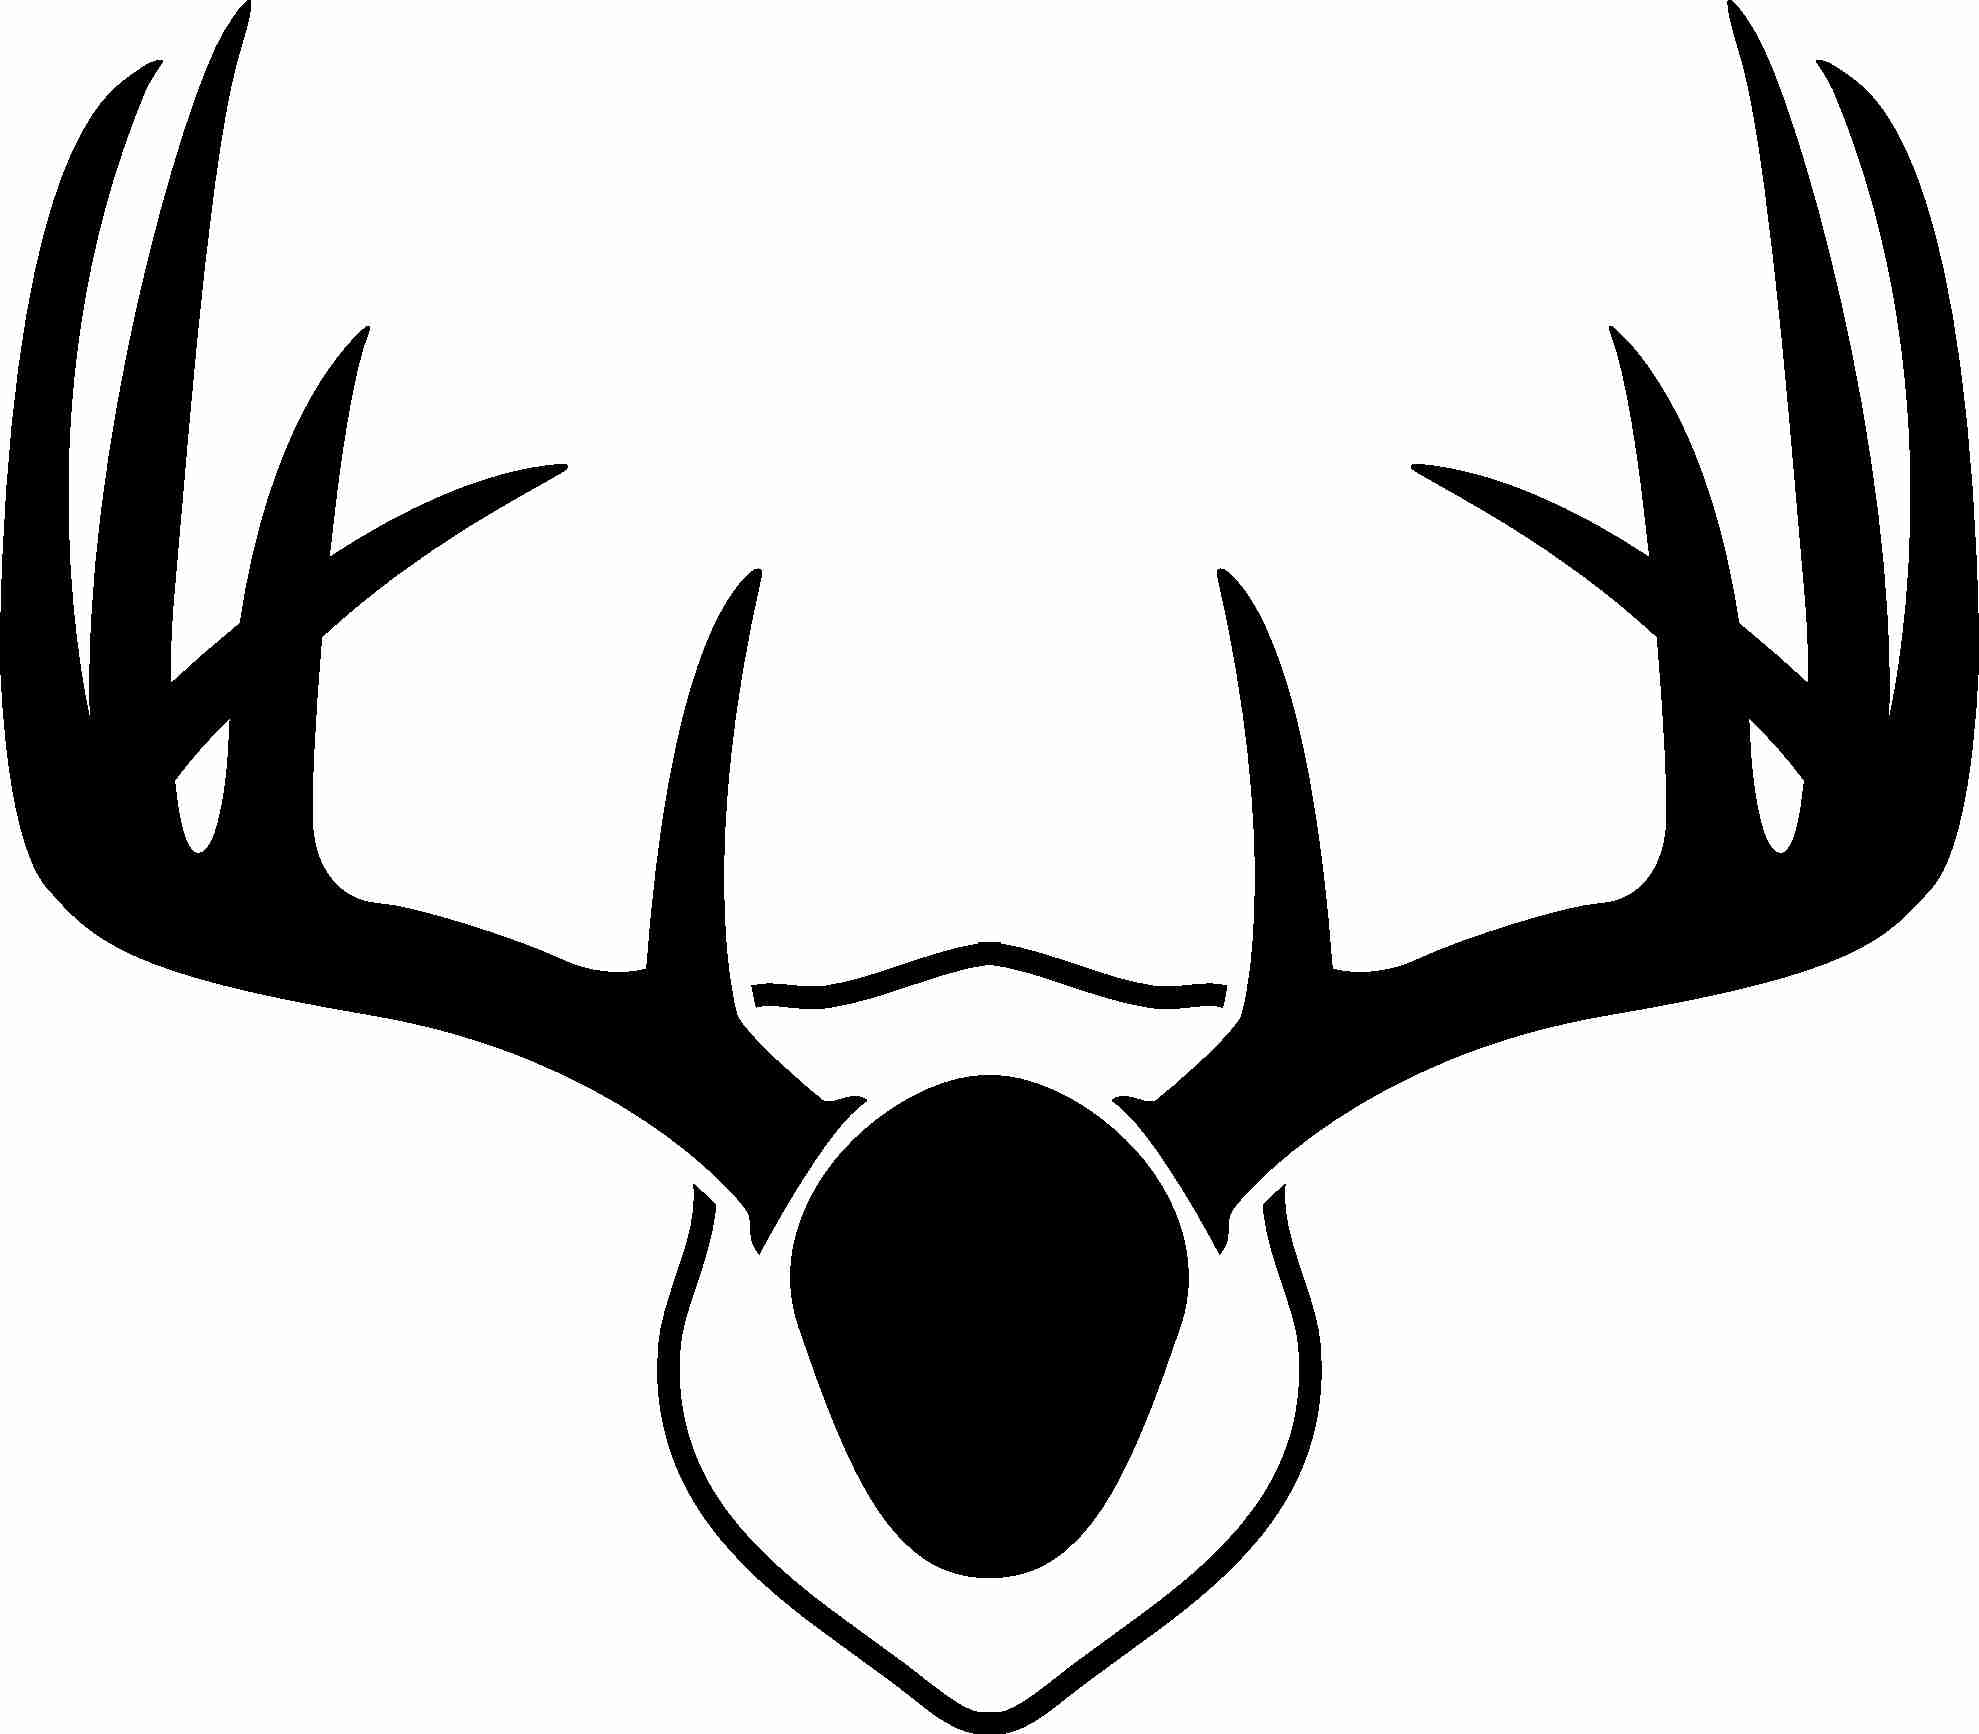 graphic about Deer Head Silhouette Printable identified as Deer Intellect Silhouette Printable at  Totally free for